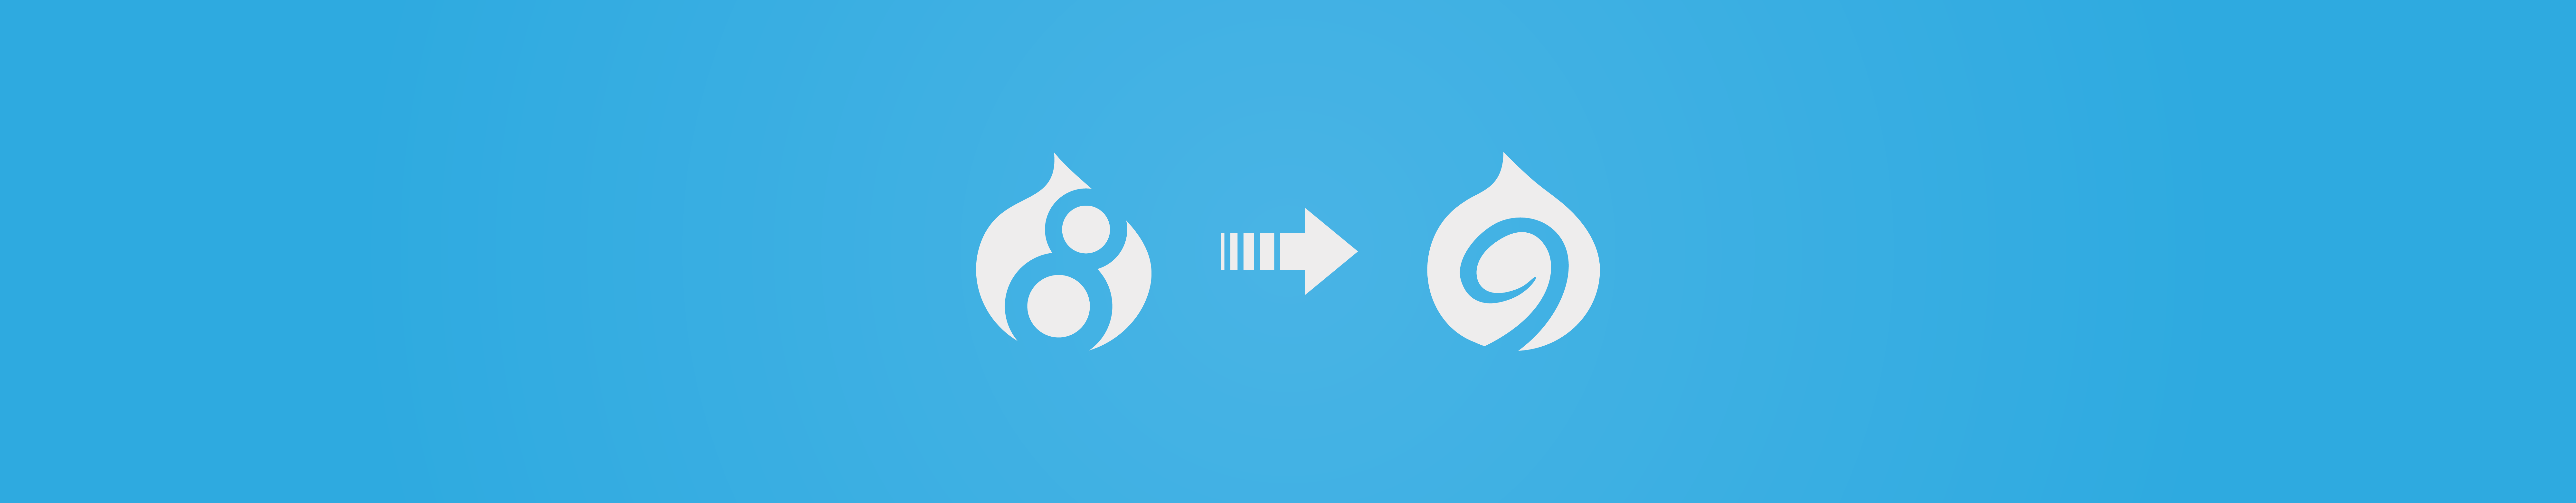 Image of Drupal 8 icon with arrow pointing to Drupal 9 icon on blue background